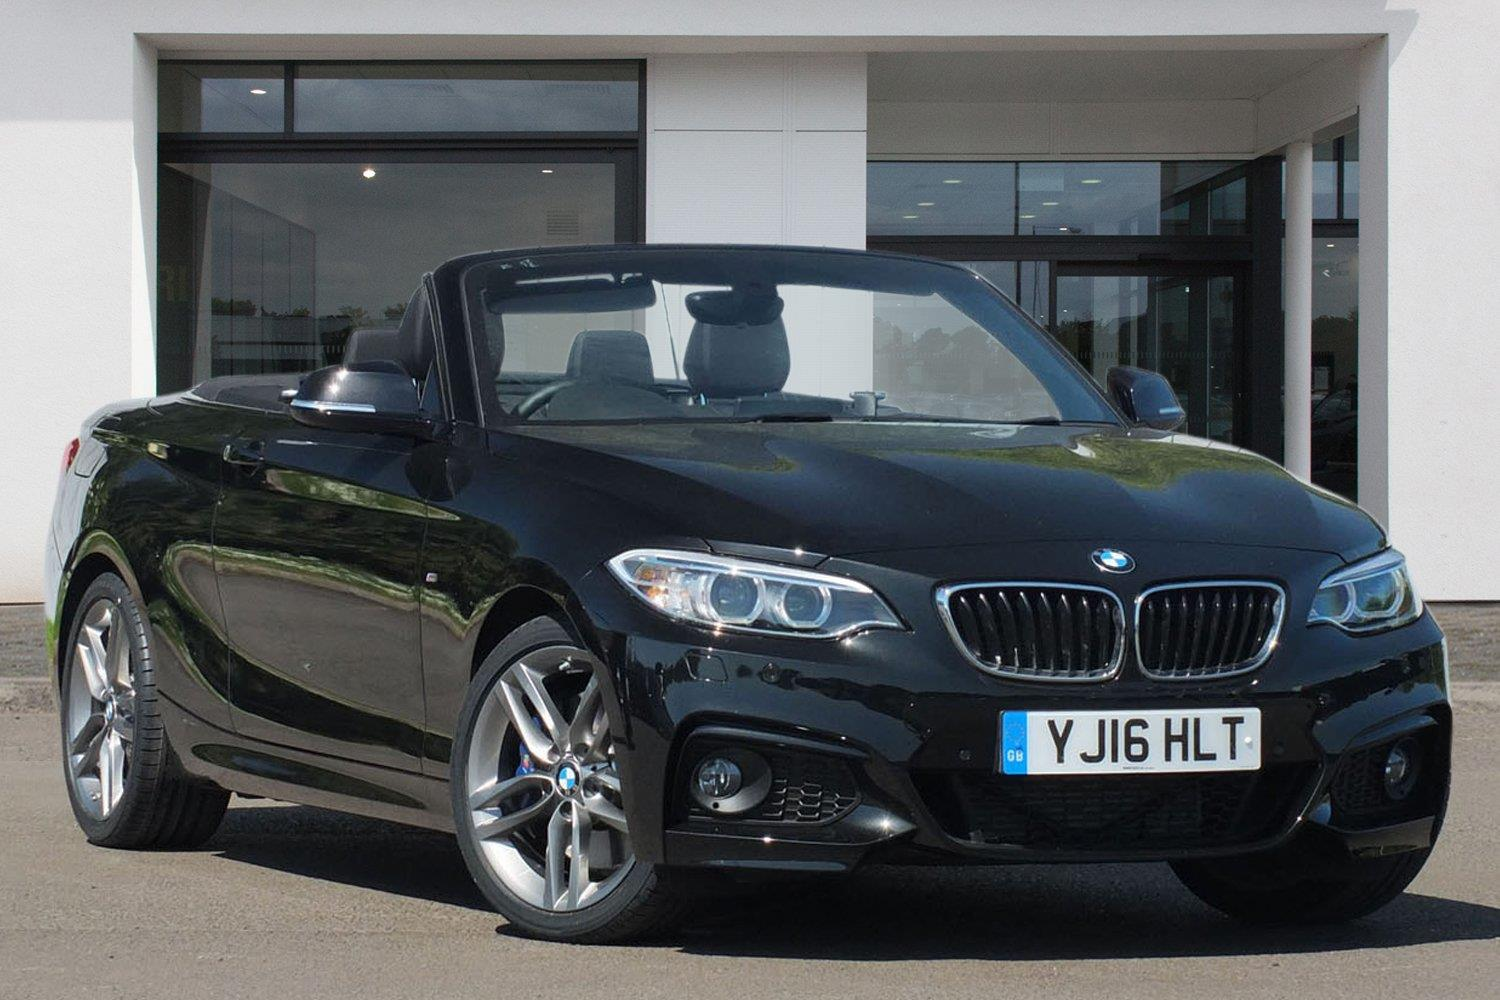 BMW 2 Series Convertible YJ16HLT - Image 9